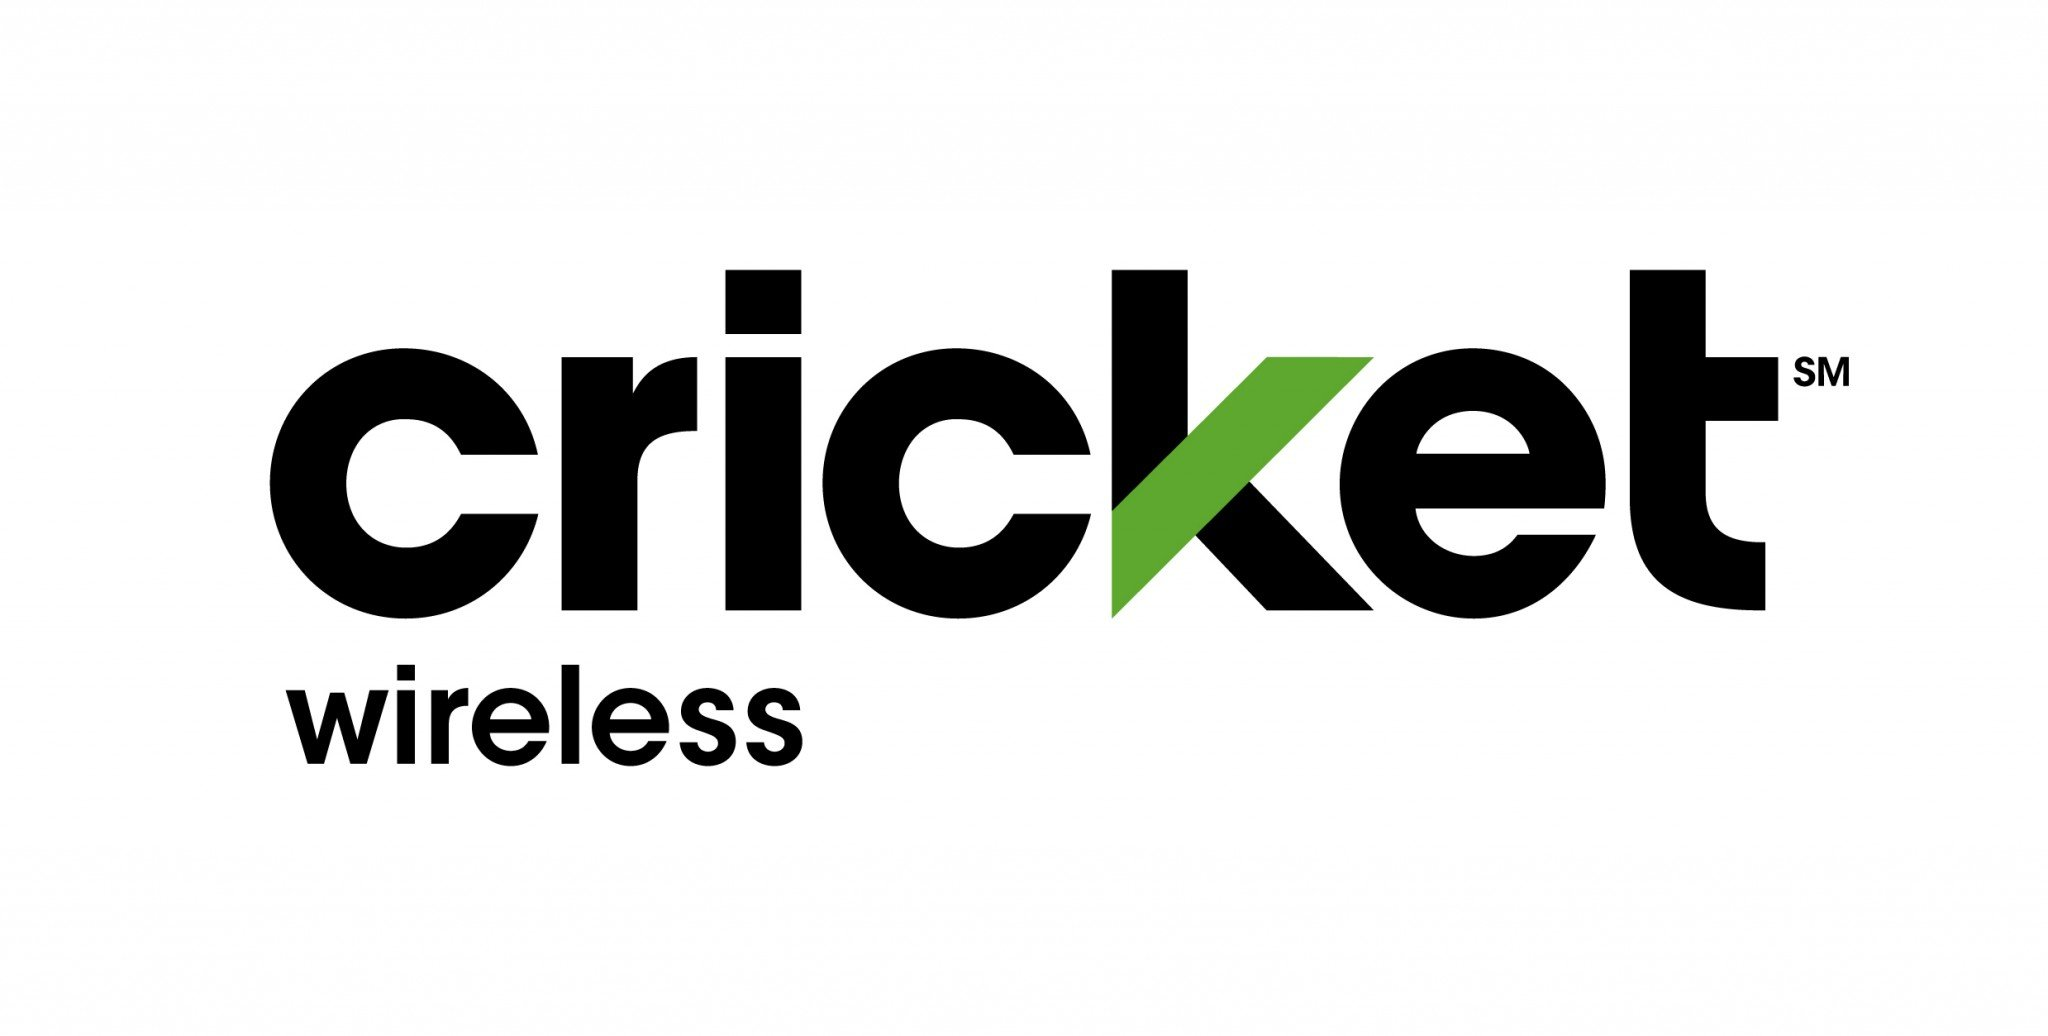 can you make money with cricket wireless business